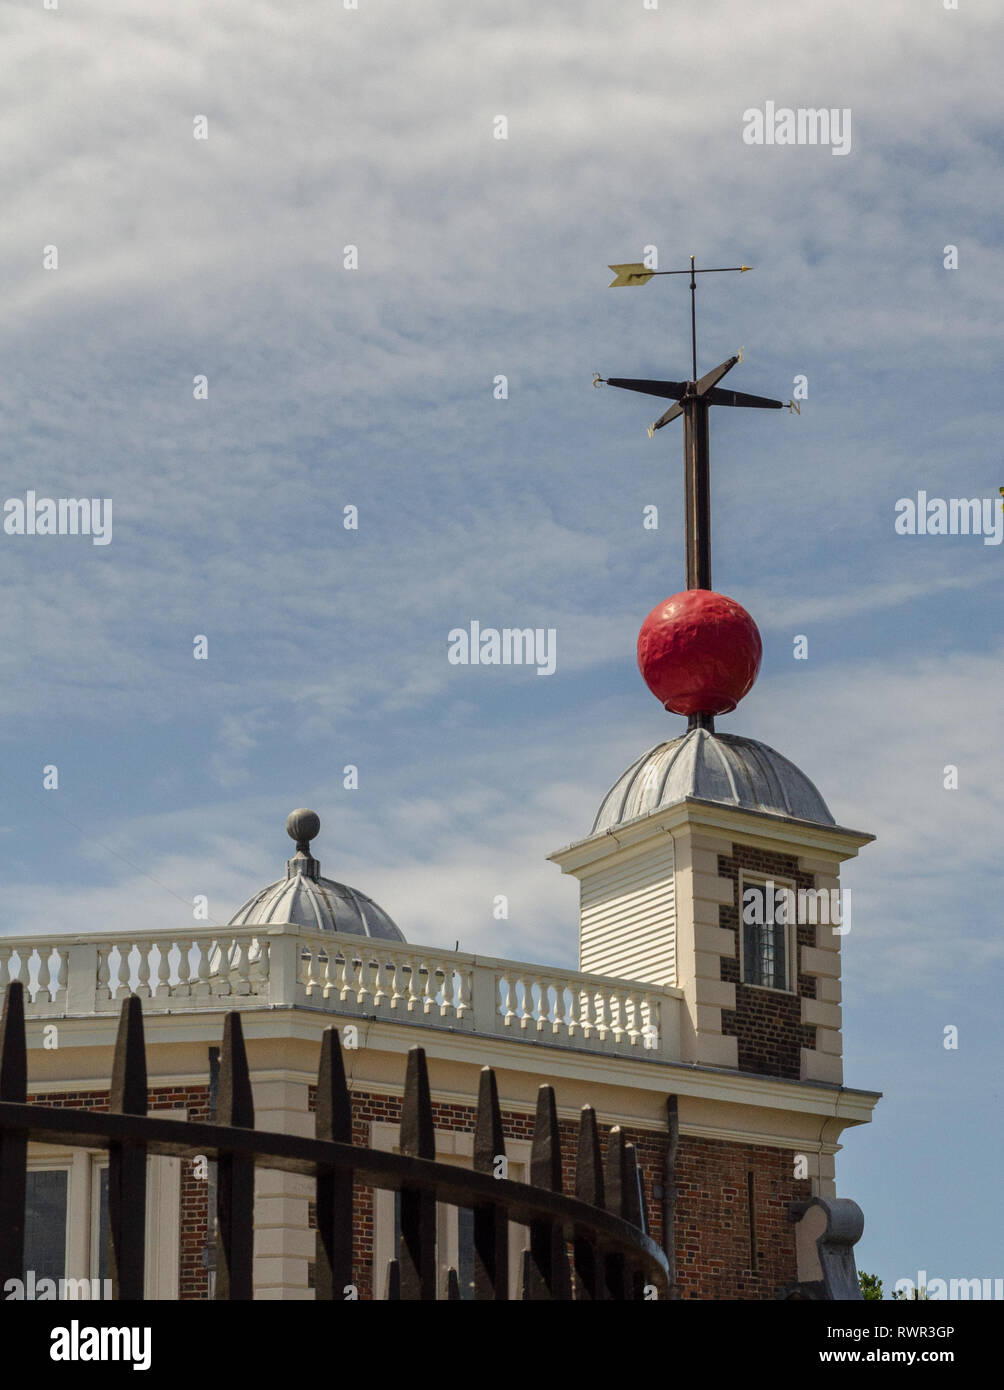 The Time Ball just after dropping (1:00 PM) at the Royal Observatory, Greenwich, London, England. - Stock Image